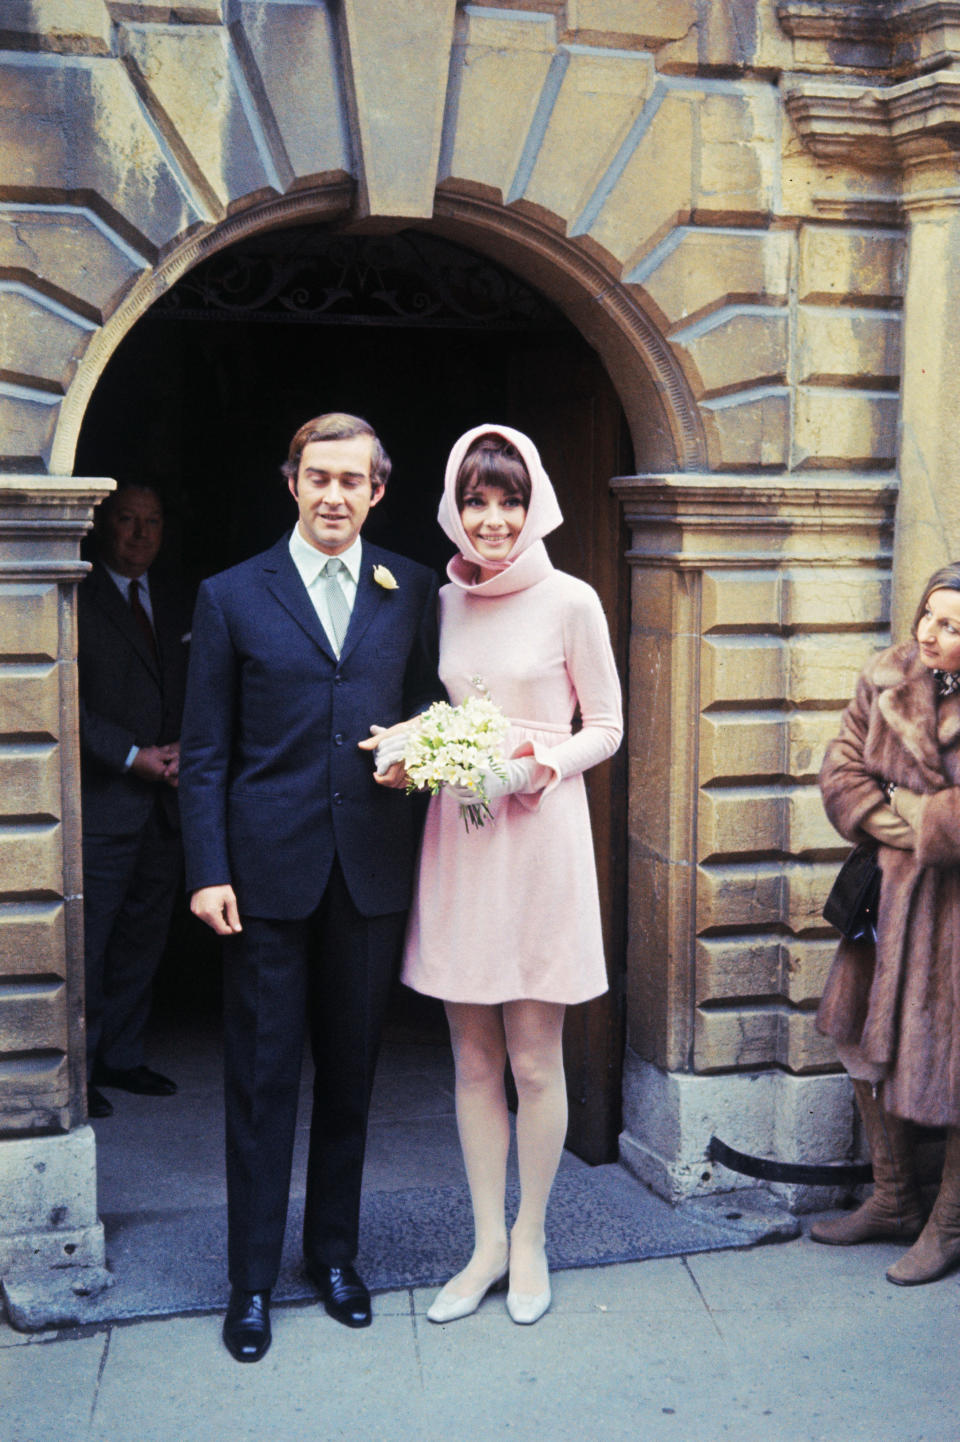 Audrey Hepburn and Dr. Andrea Dotti after their wedding in 1969. [Photo: Getty]